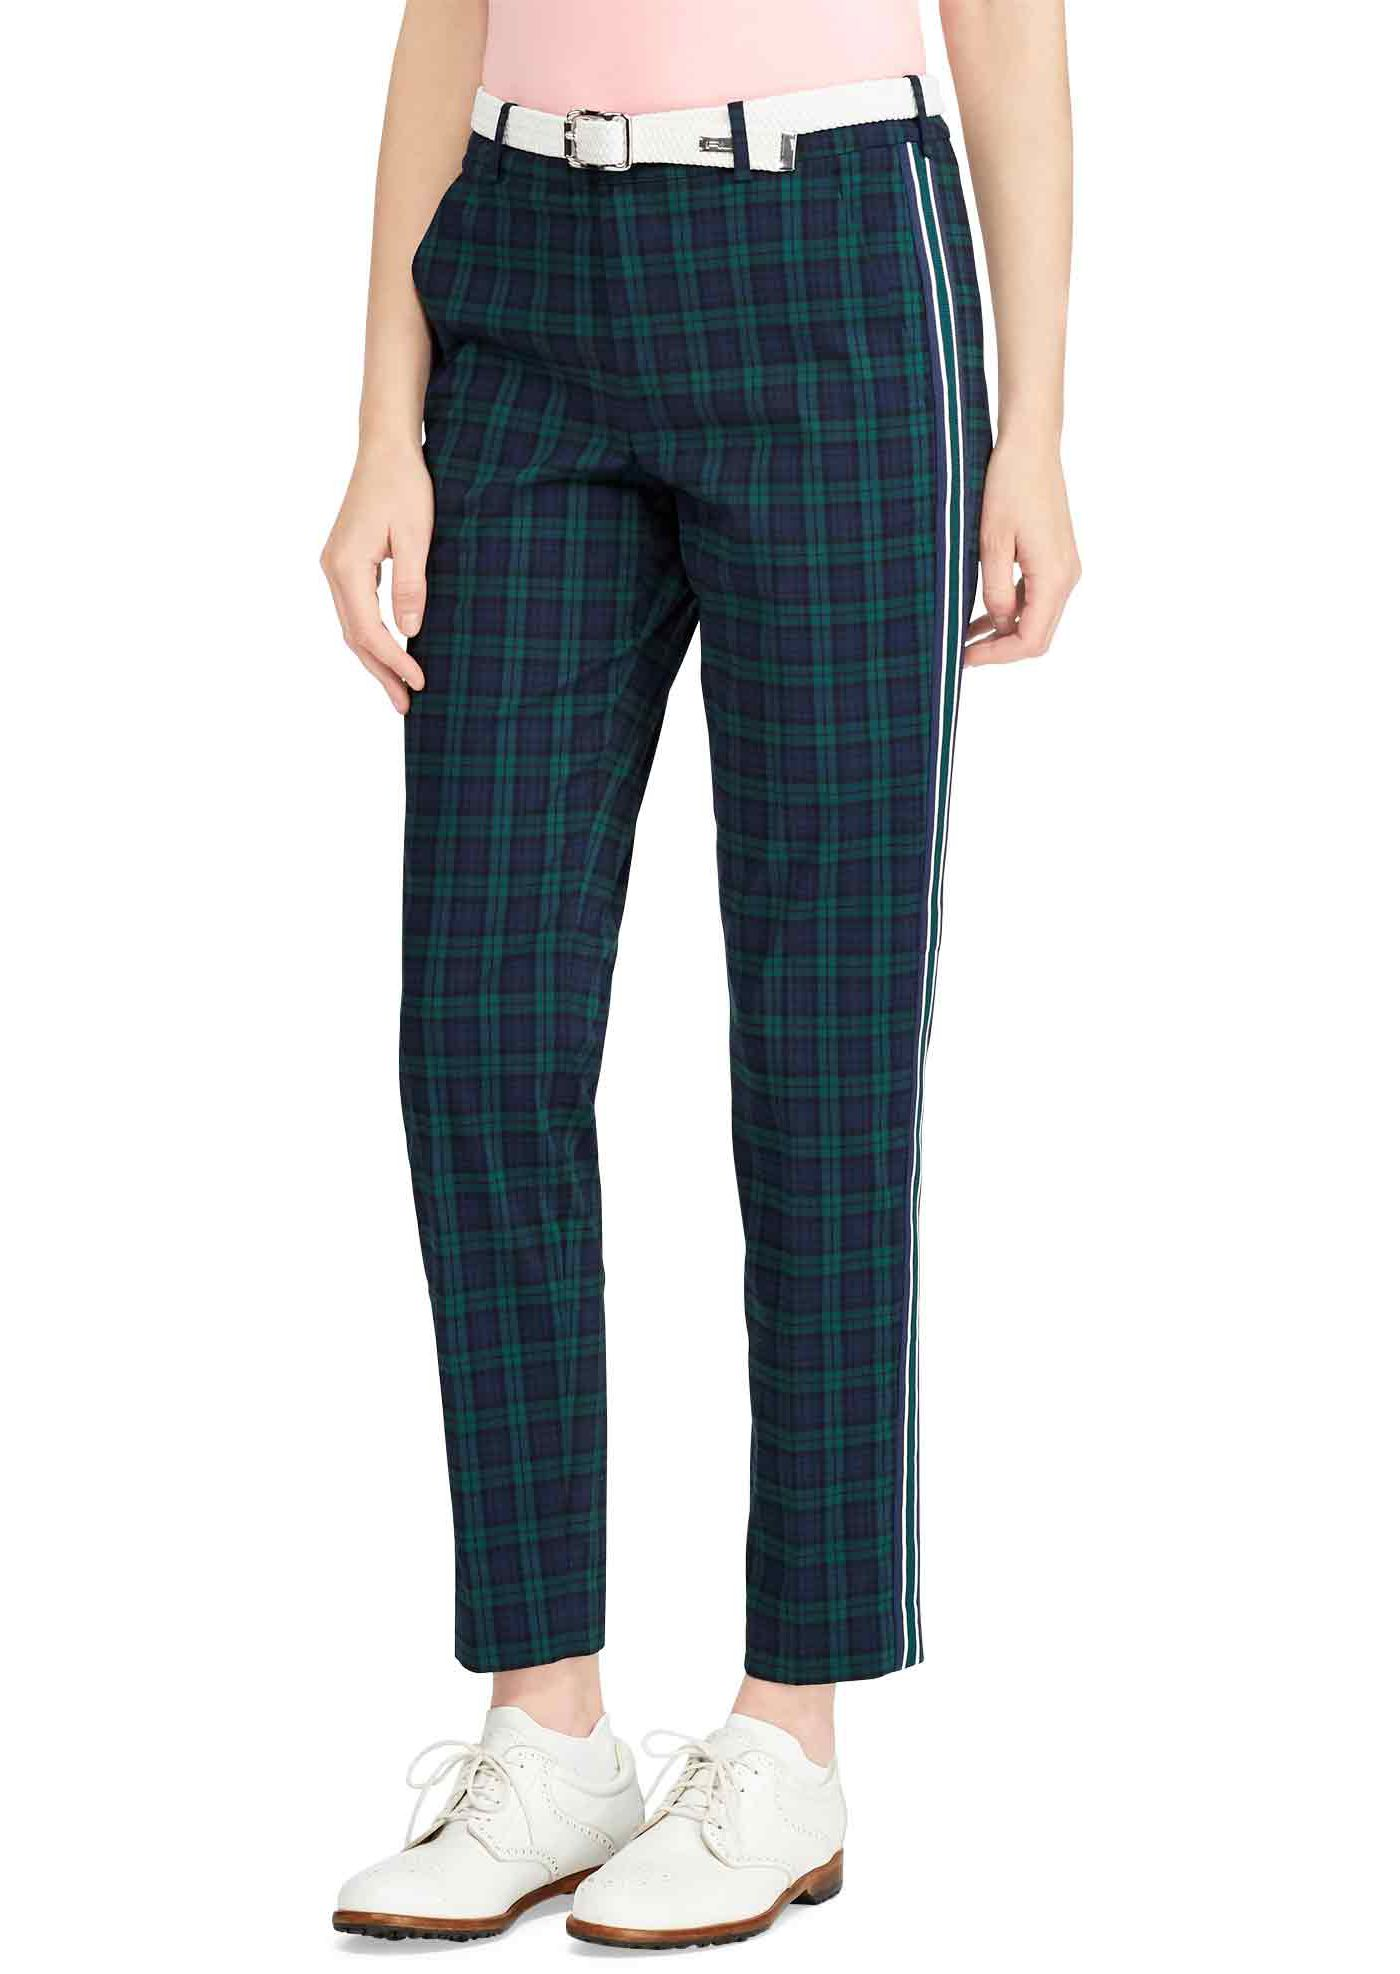 Polo Golf Women's Plaid Stretch Skinny Golf Pants